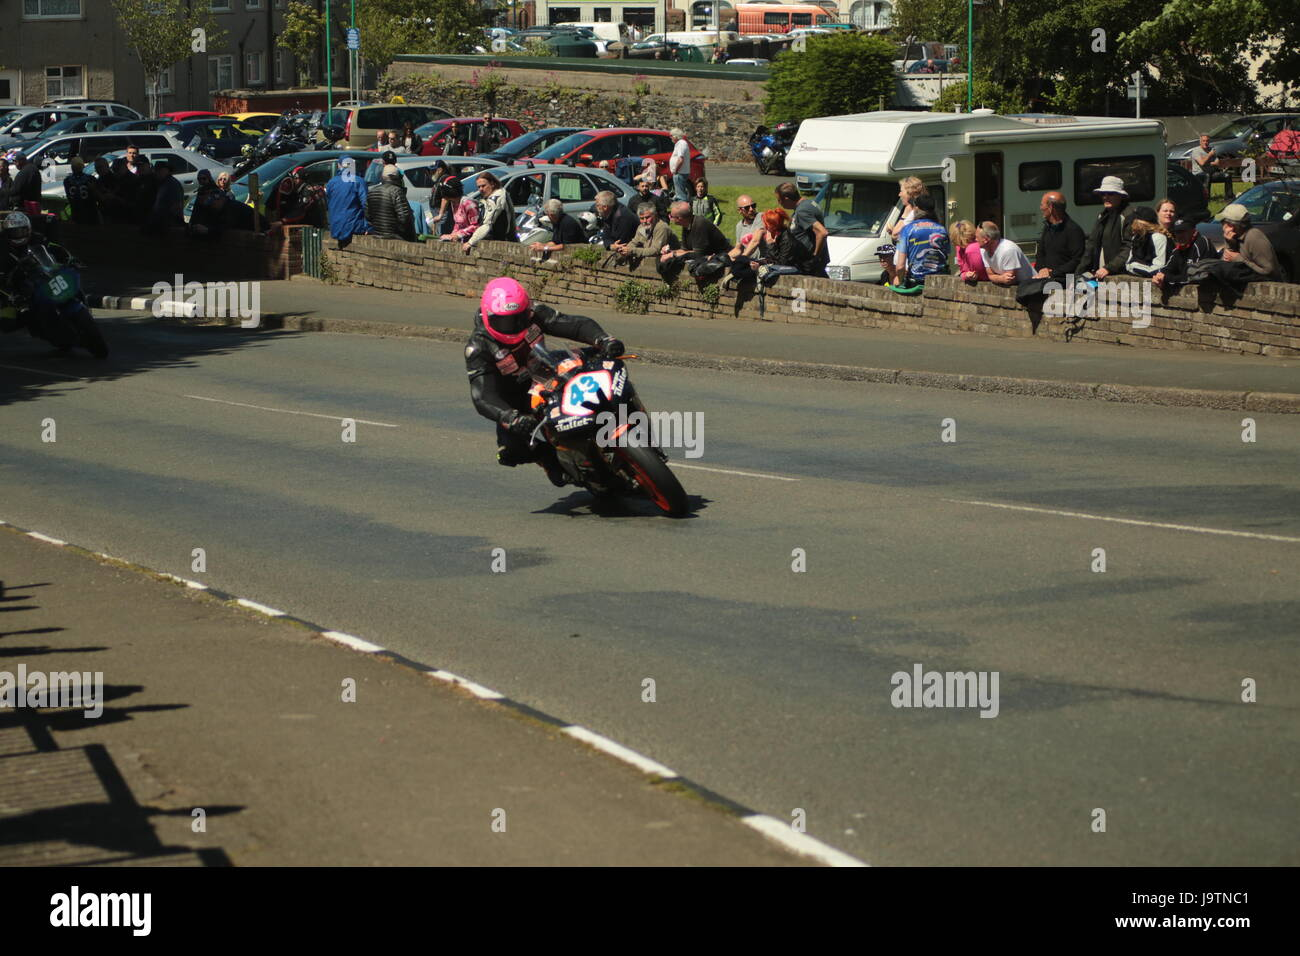 Isle of Man TT Races, Sidecar, Supersport/Lightweight/Newcomers (all classes) Qualifying Session and Practice Race. - Stock Image